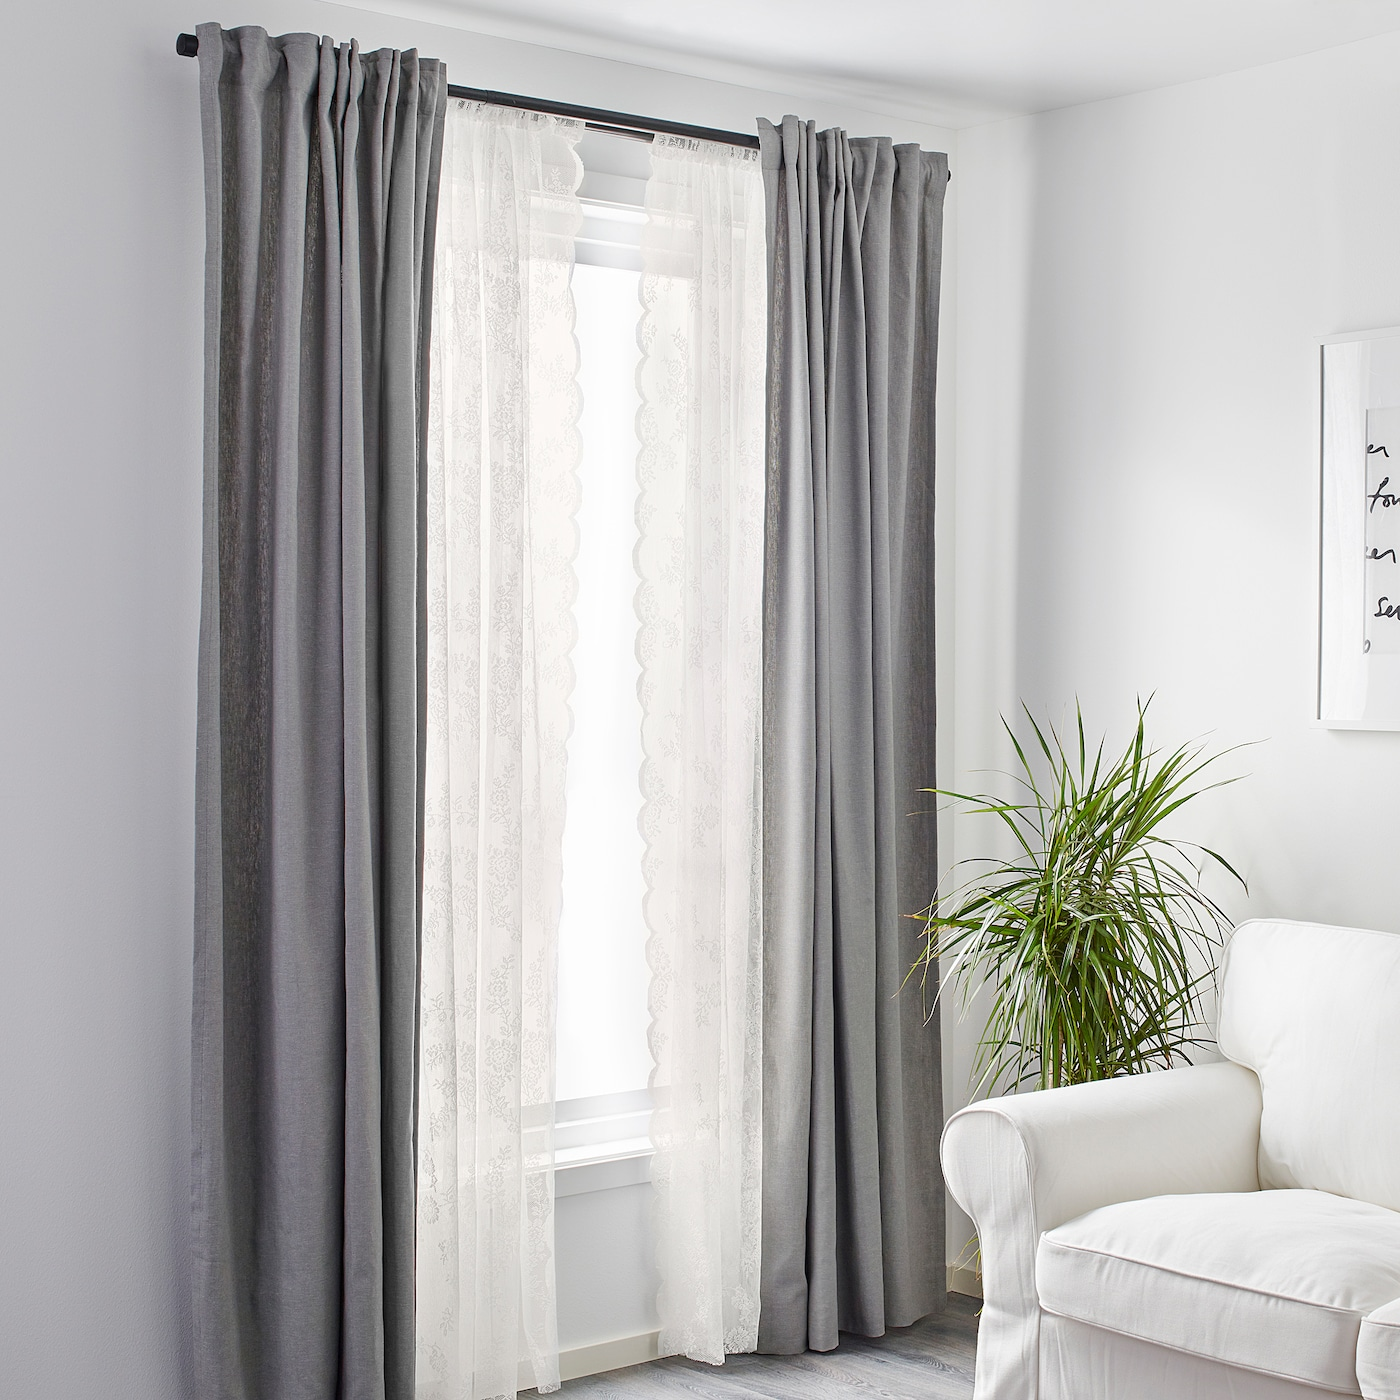 Alvine Spets Lace Curtains 1 Pair Off White Ikea